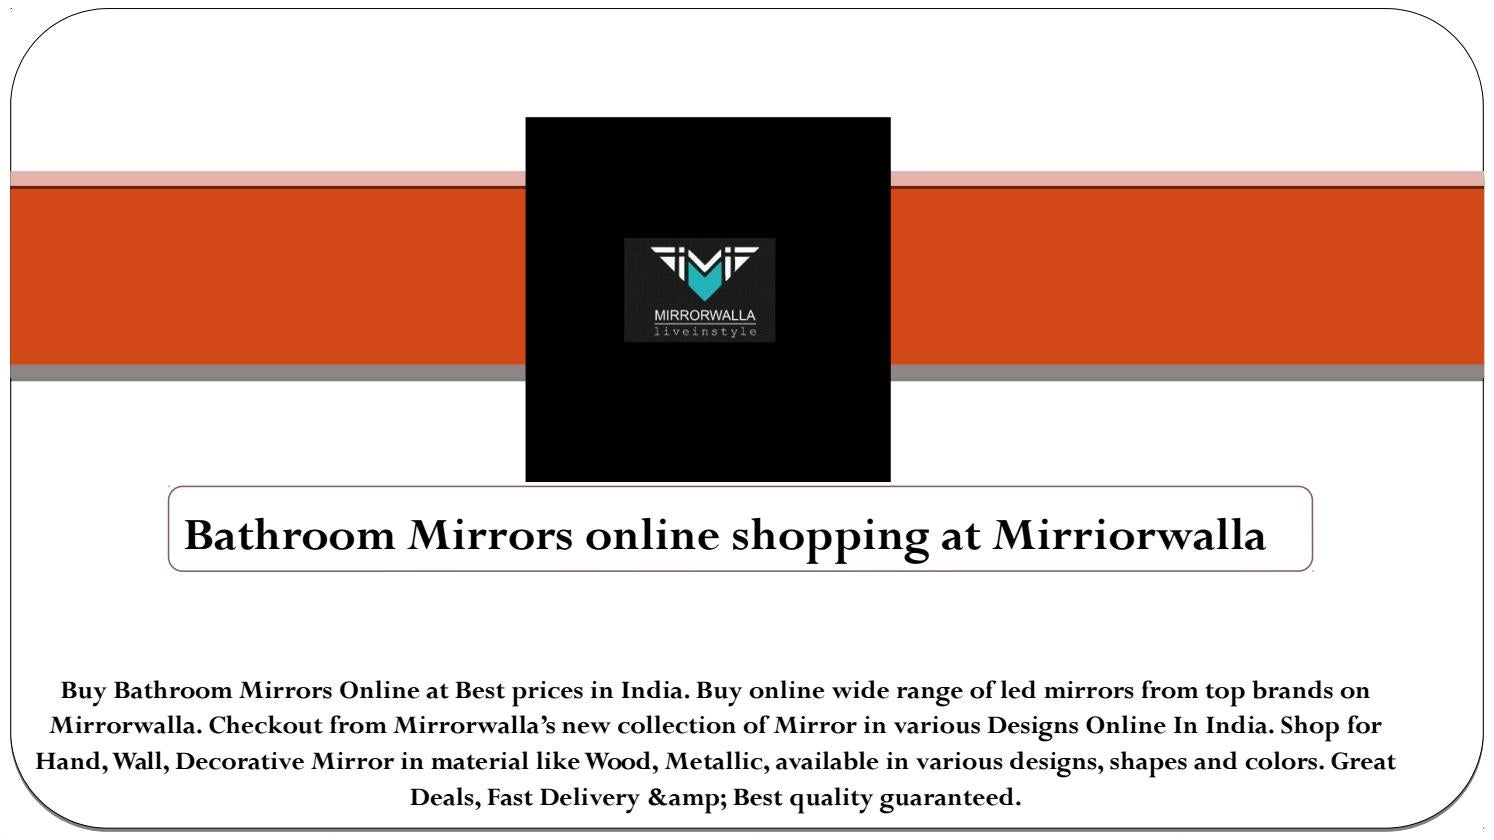 Bathroom mirrors online shopping at mirriorwalla by mirrorwalla - issuu